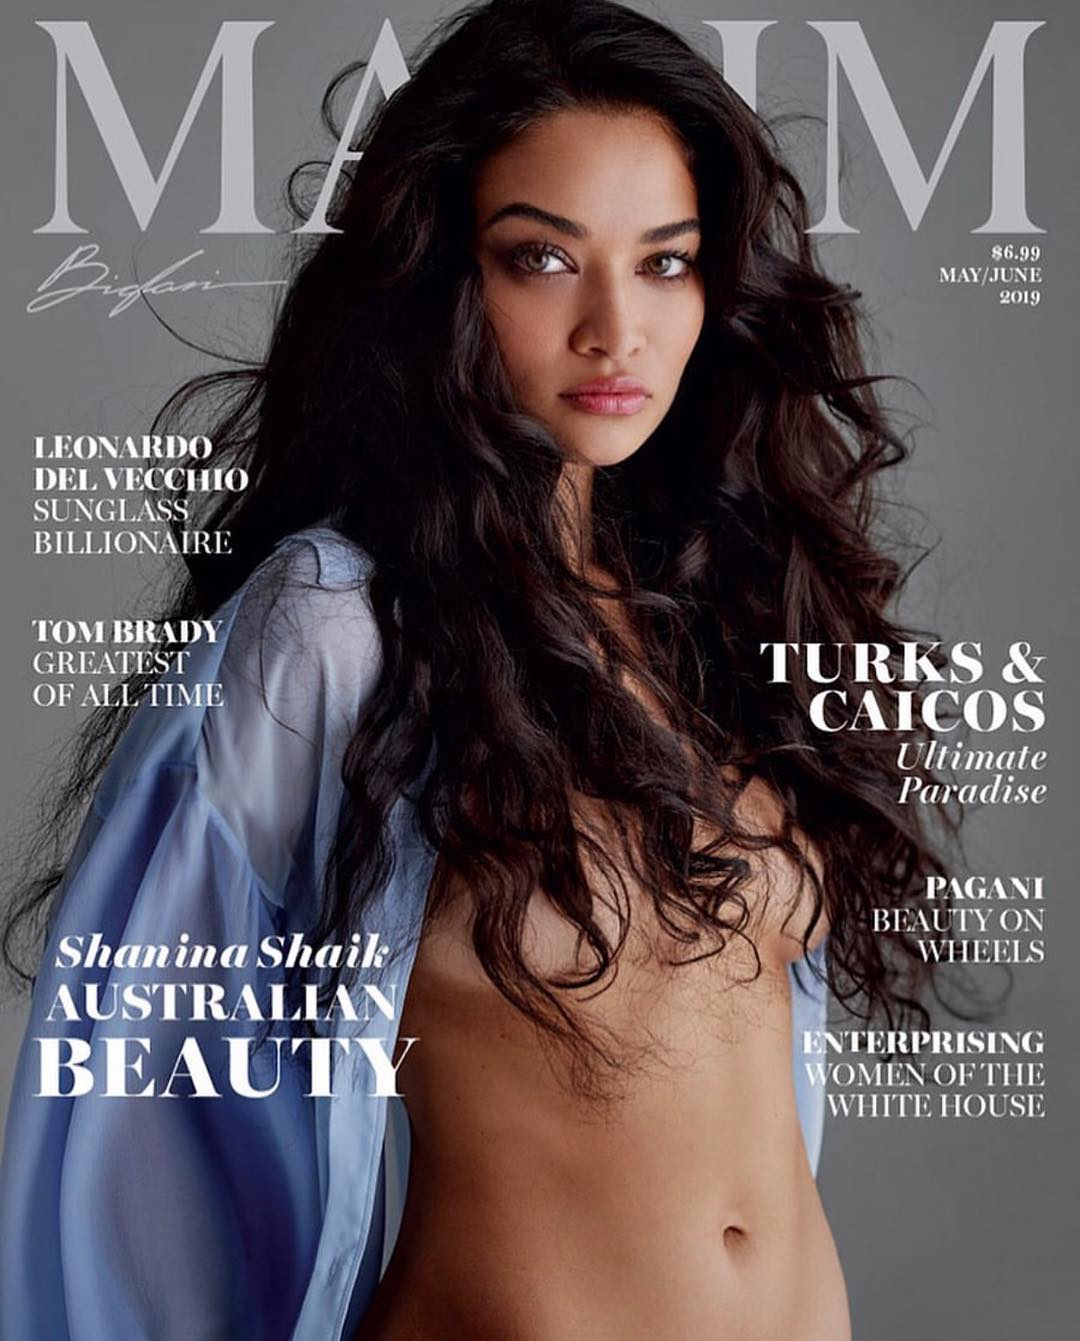 Shanina Shaik Is Maxim's May/June Cover Girl